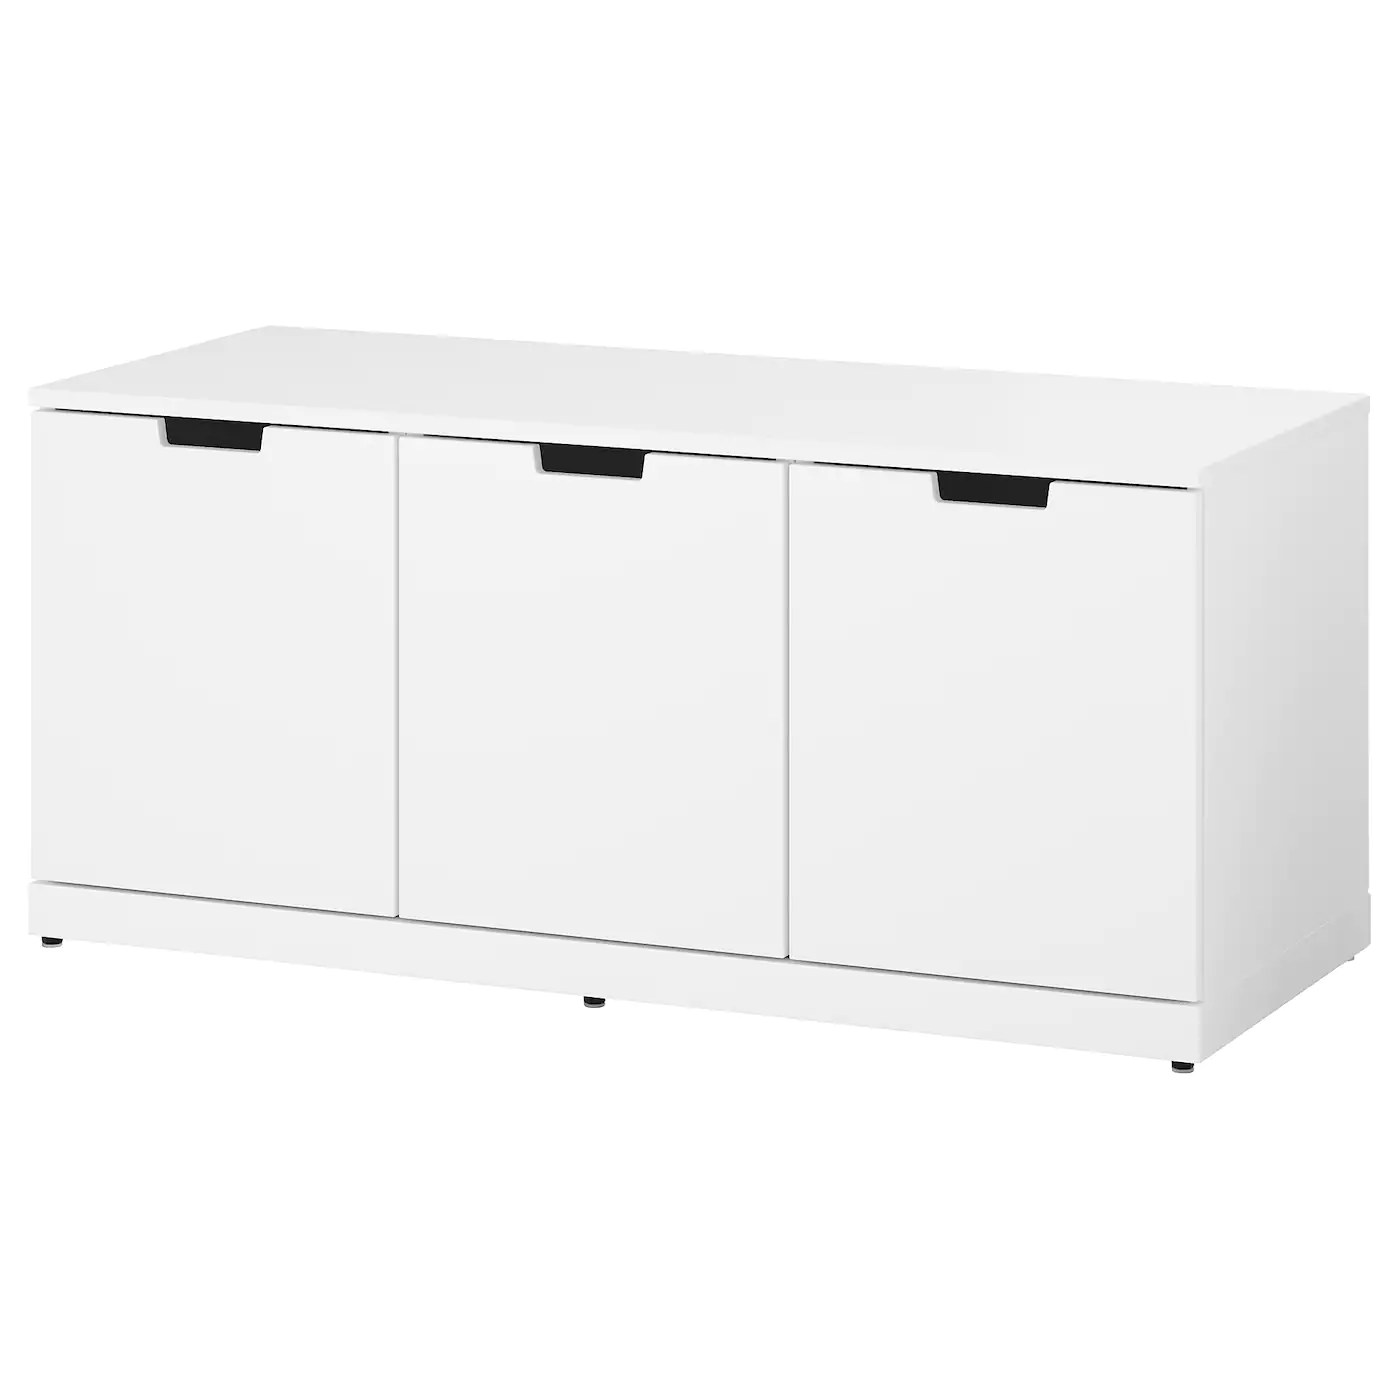 Ikea Kommode 60 X 120 Nordli Chest Of 3 Drawers White